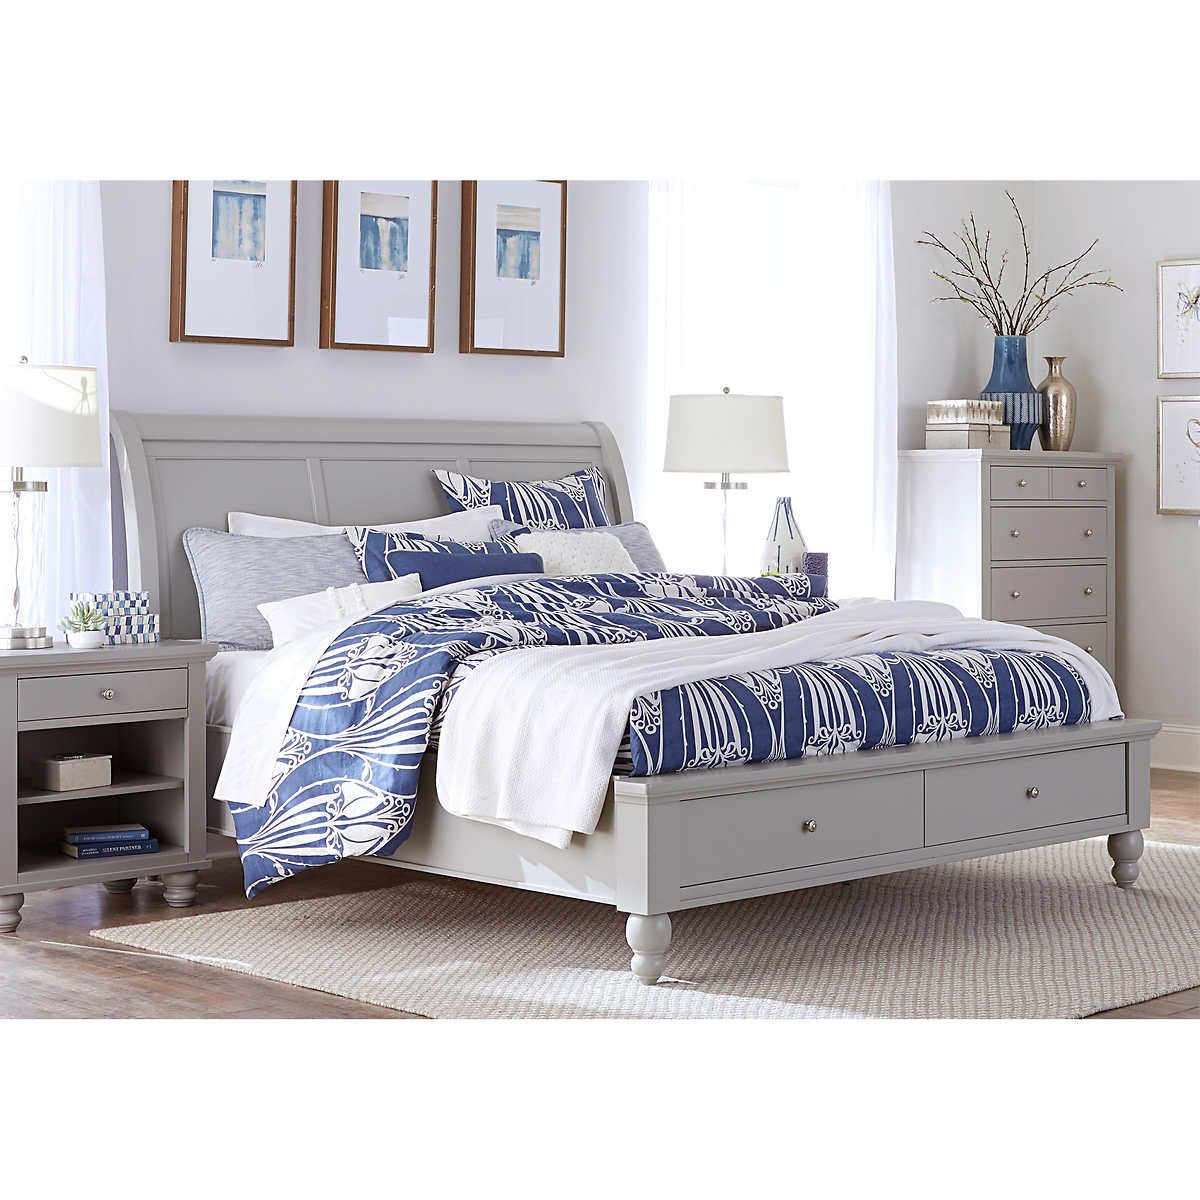 Pin by Megan on Bedroom Bliss King storage bed